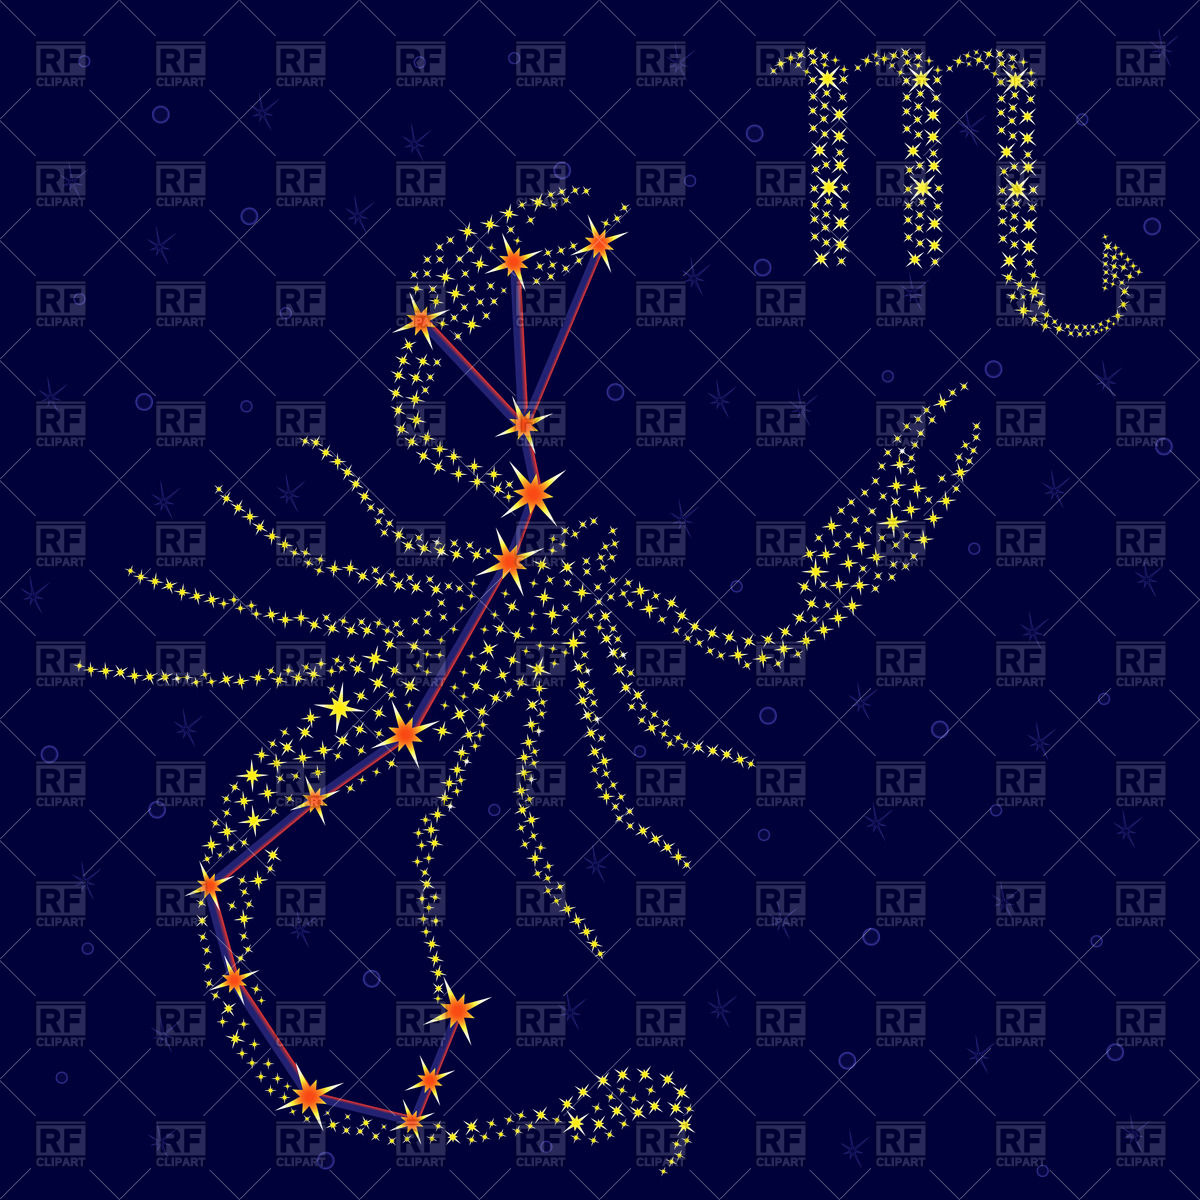 Zodiac sign Scorpio, constellation Vector Image #66761.